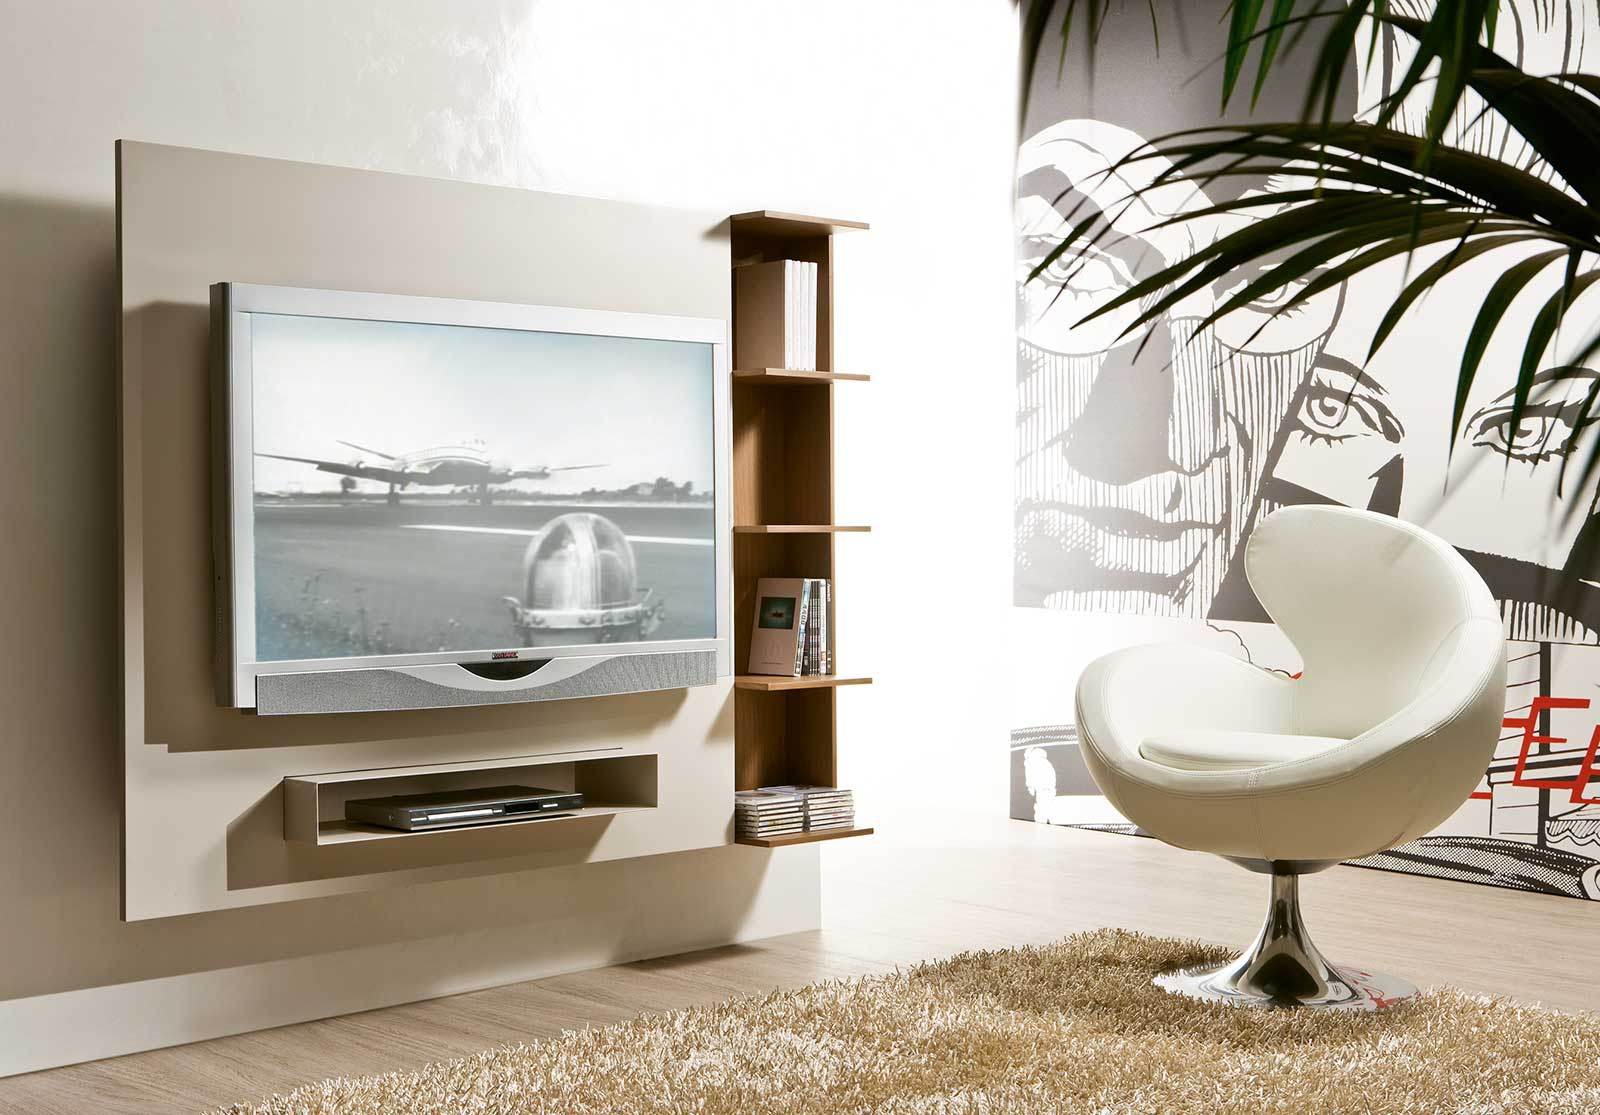 Gordon mobile porta TV - Italy Dream Design